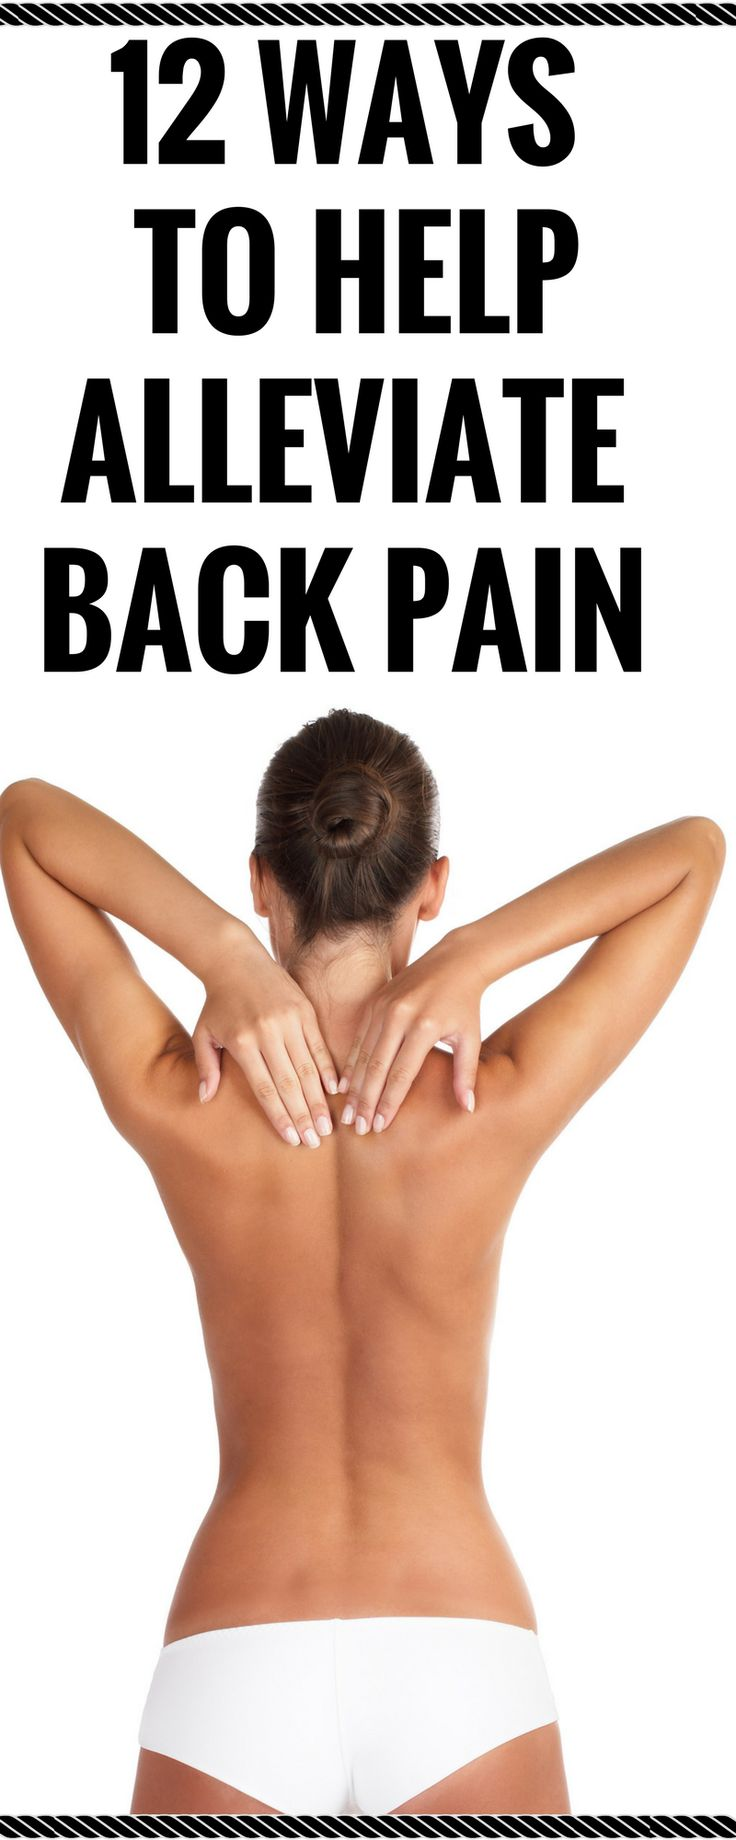 12 Ways to help alleviate back pain http://wp.me/p8Hrfc-4V